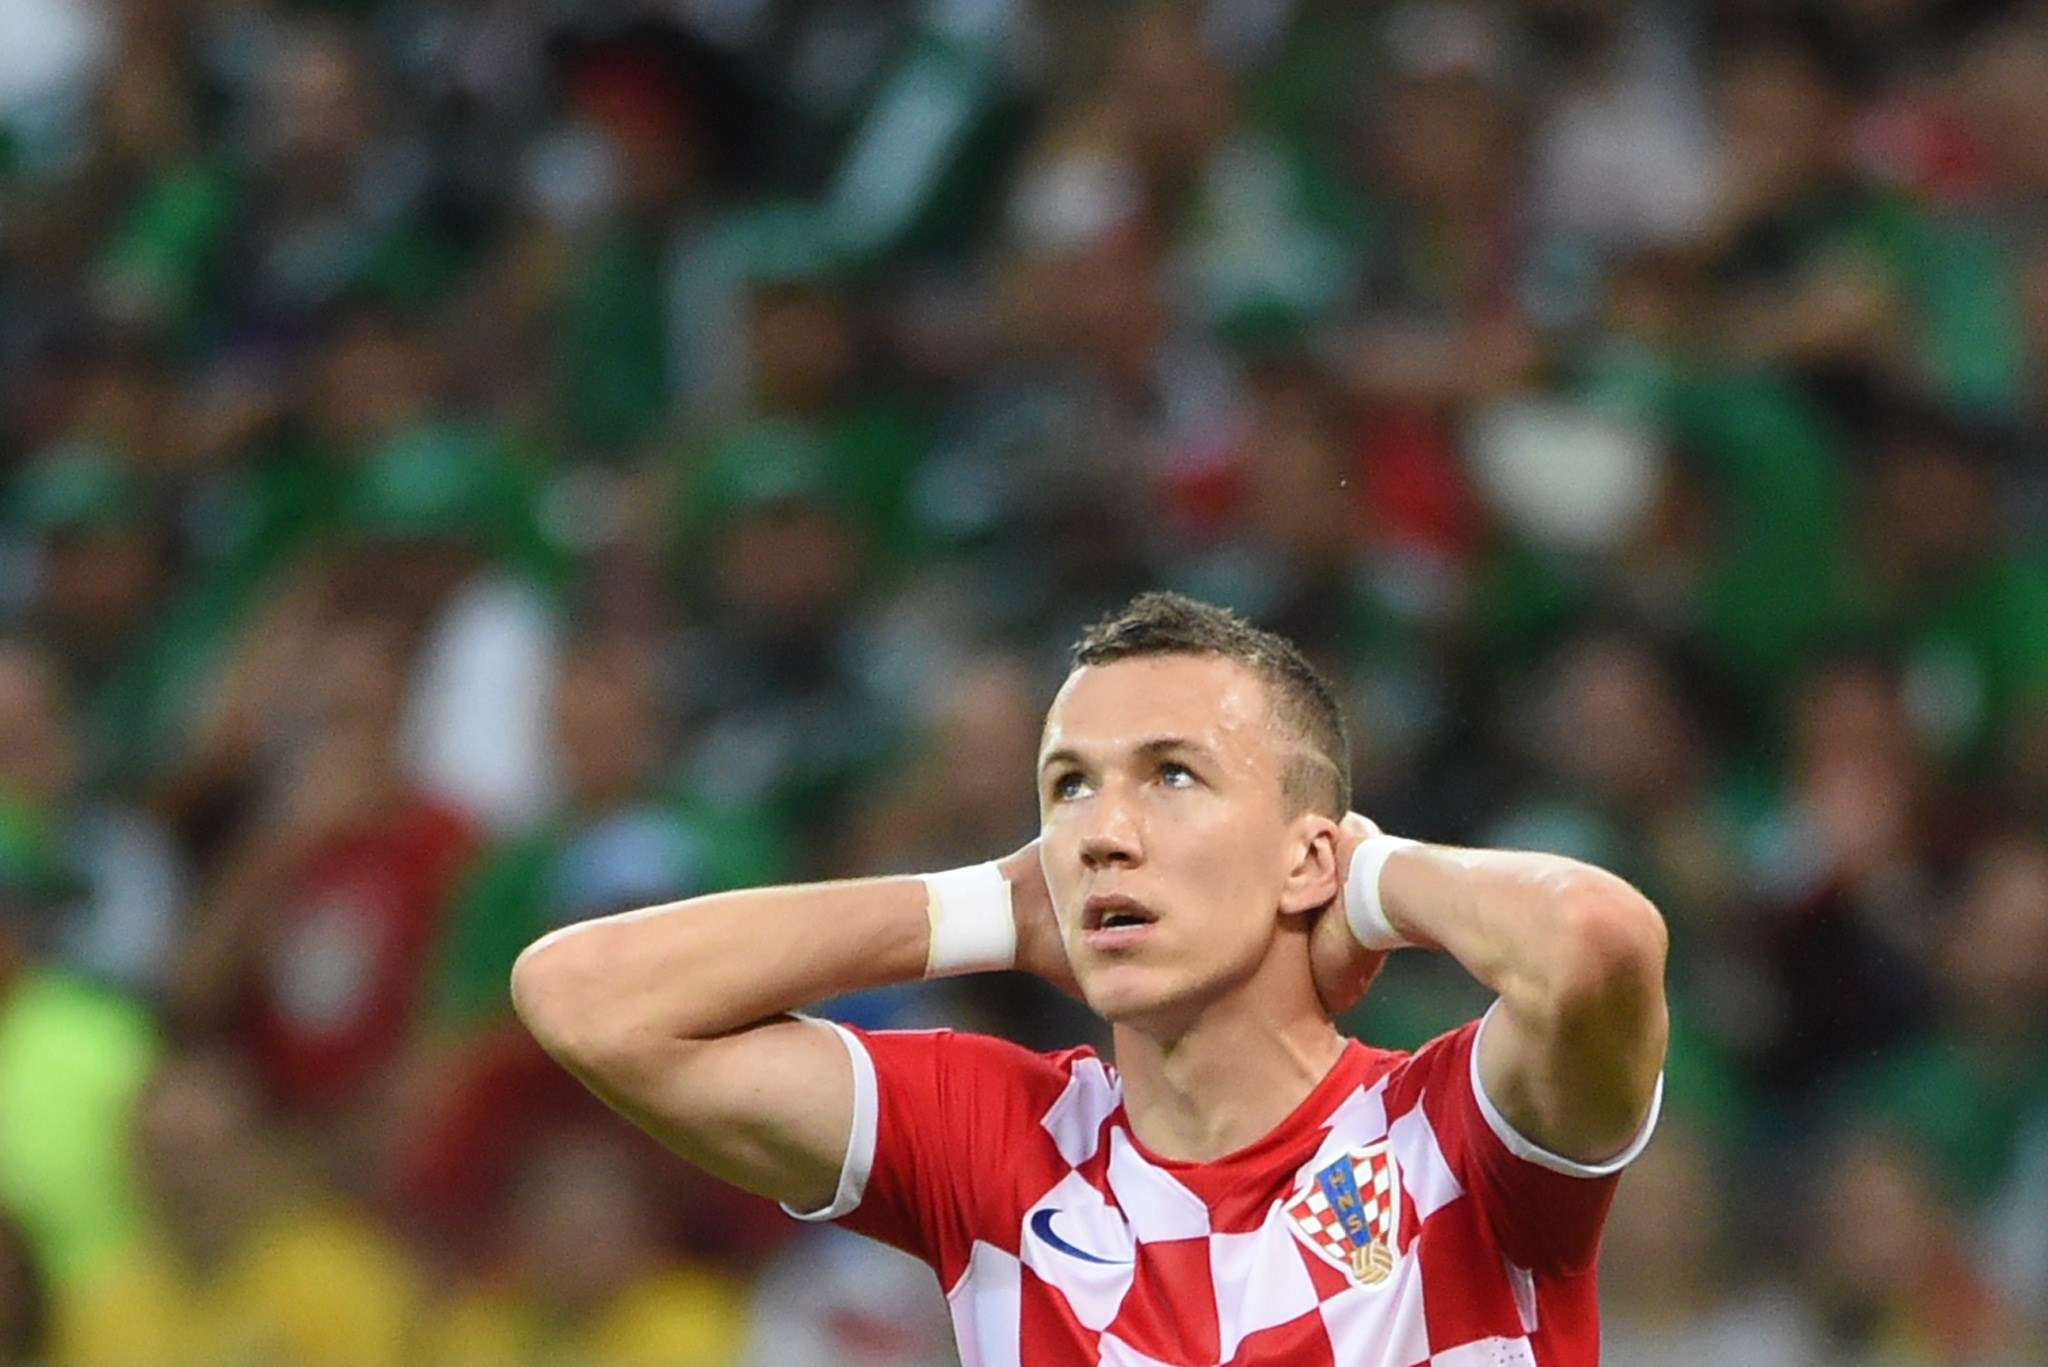 Perisic breaks shoulder, joins Wolfsburg injured